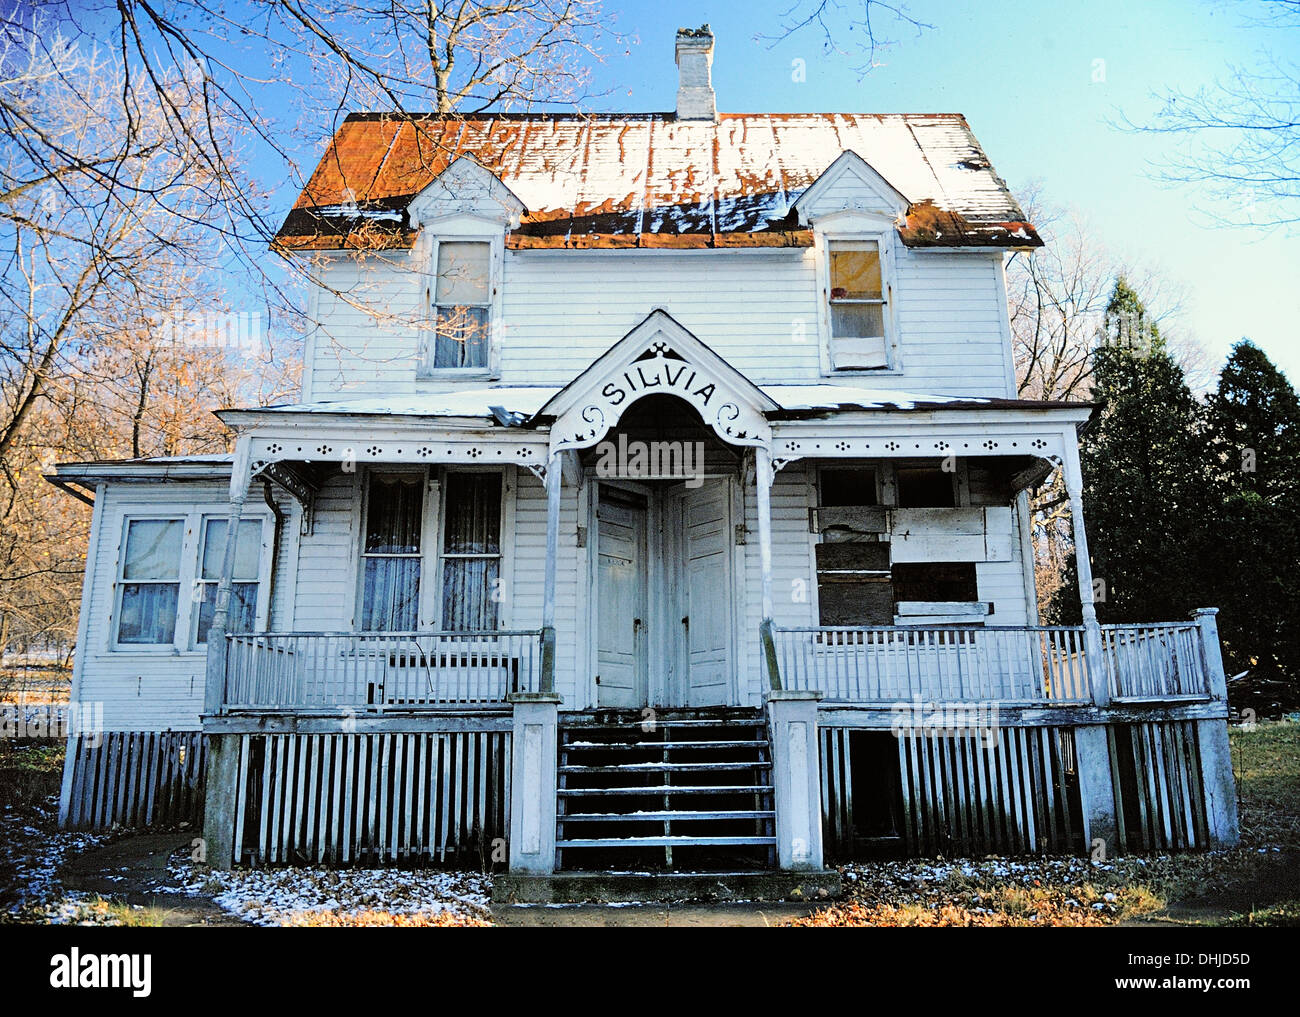 Old Victorian House of Silvia's - Stock Image